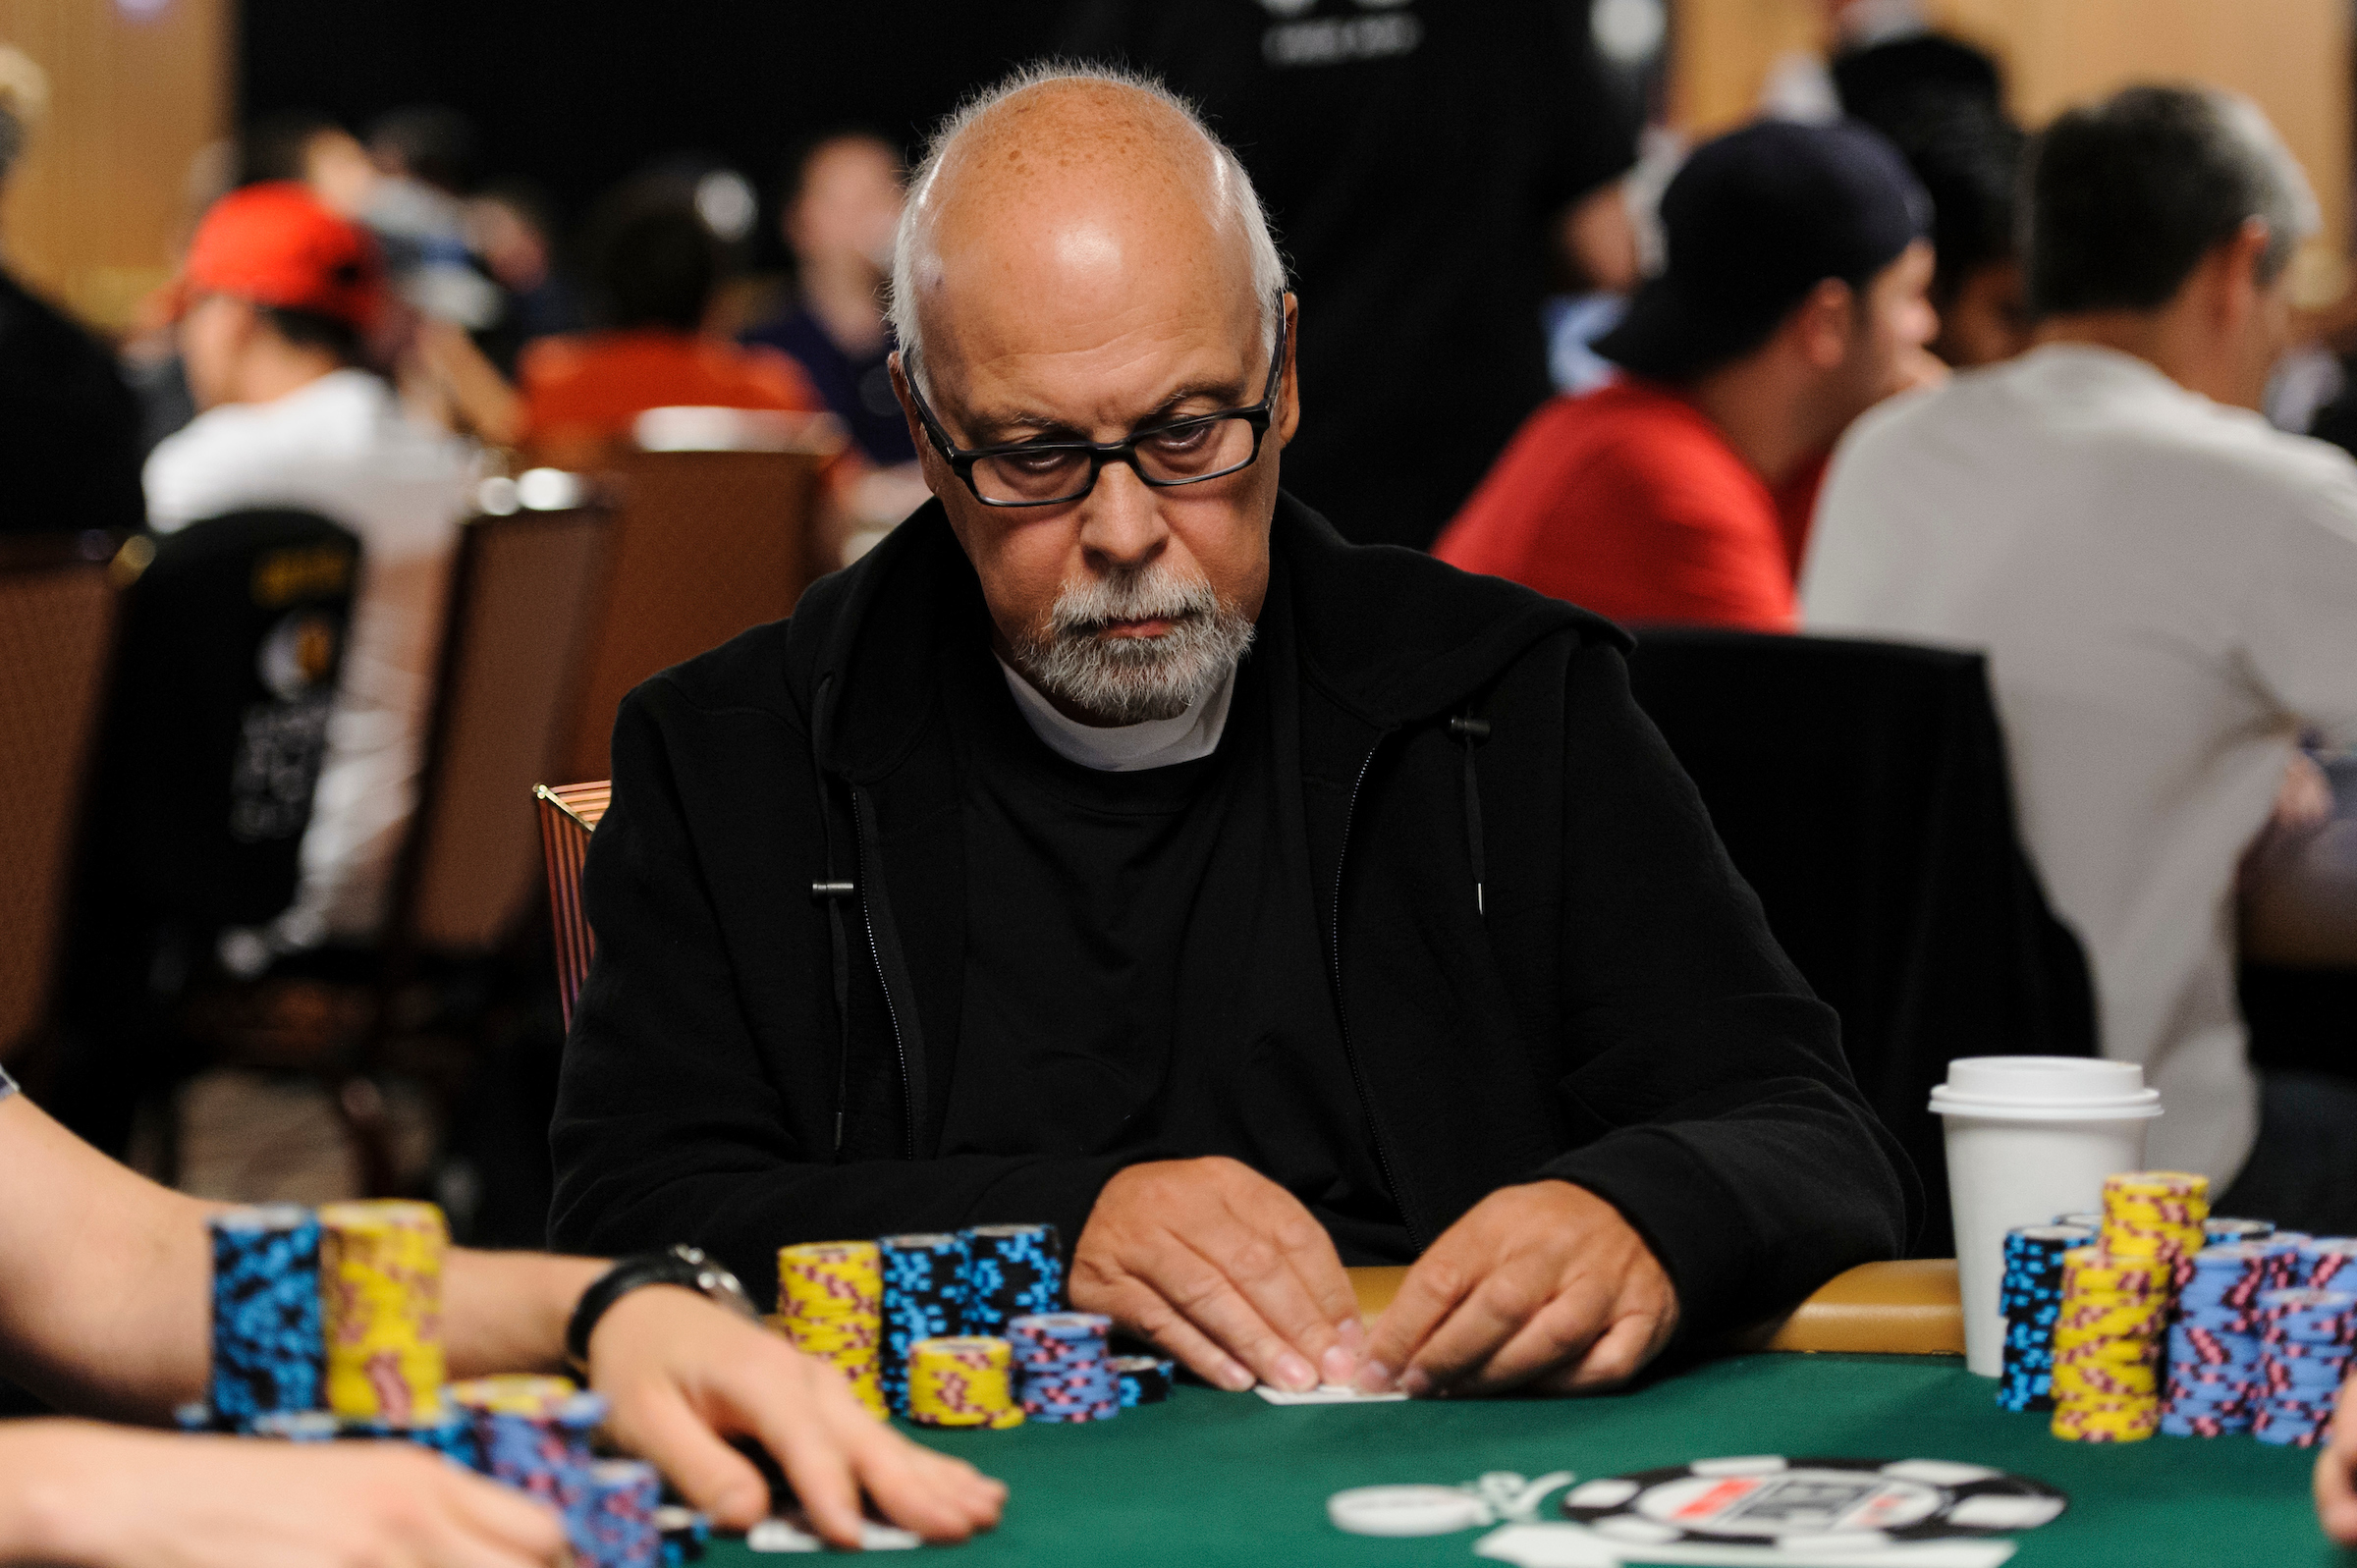 Rene Angelil in action during the 2014 World Series of Poker.